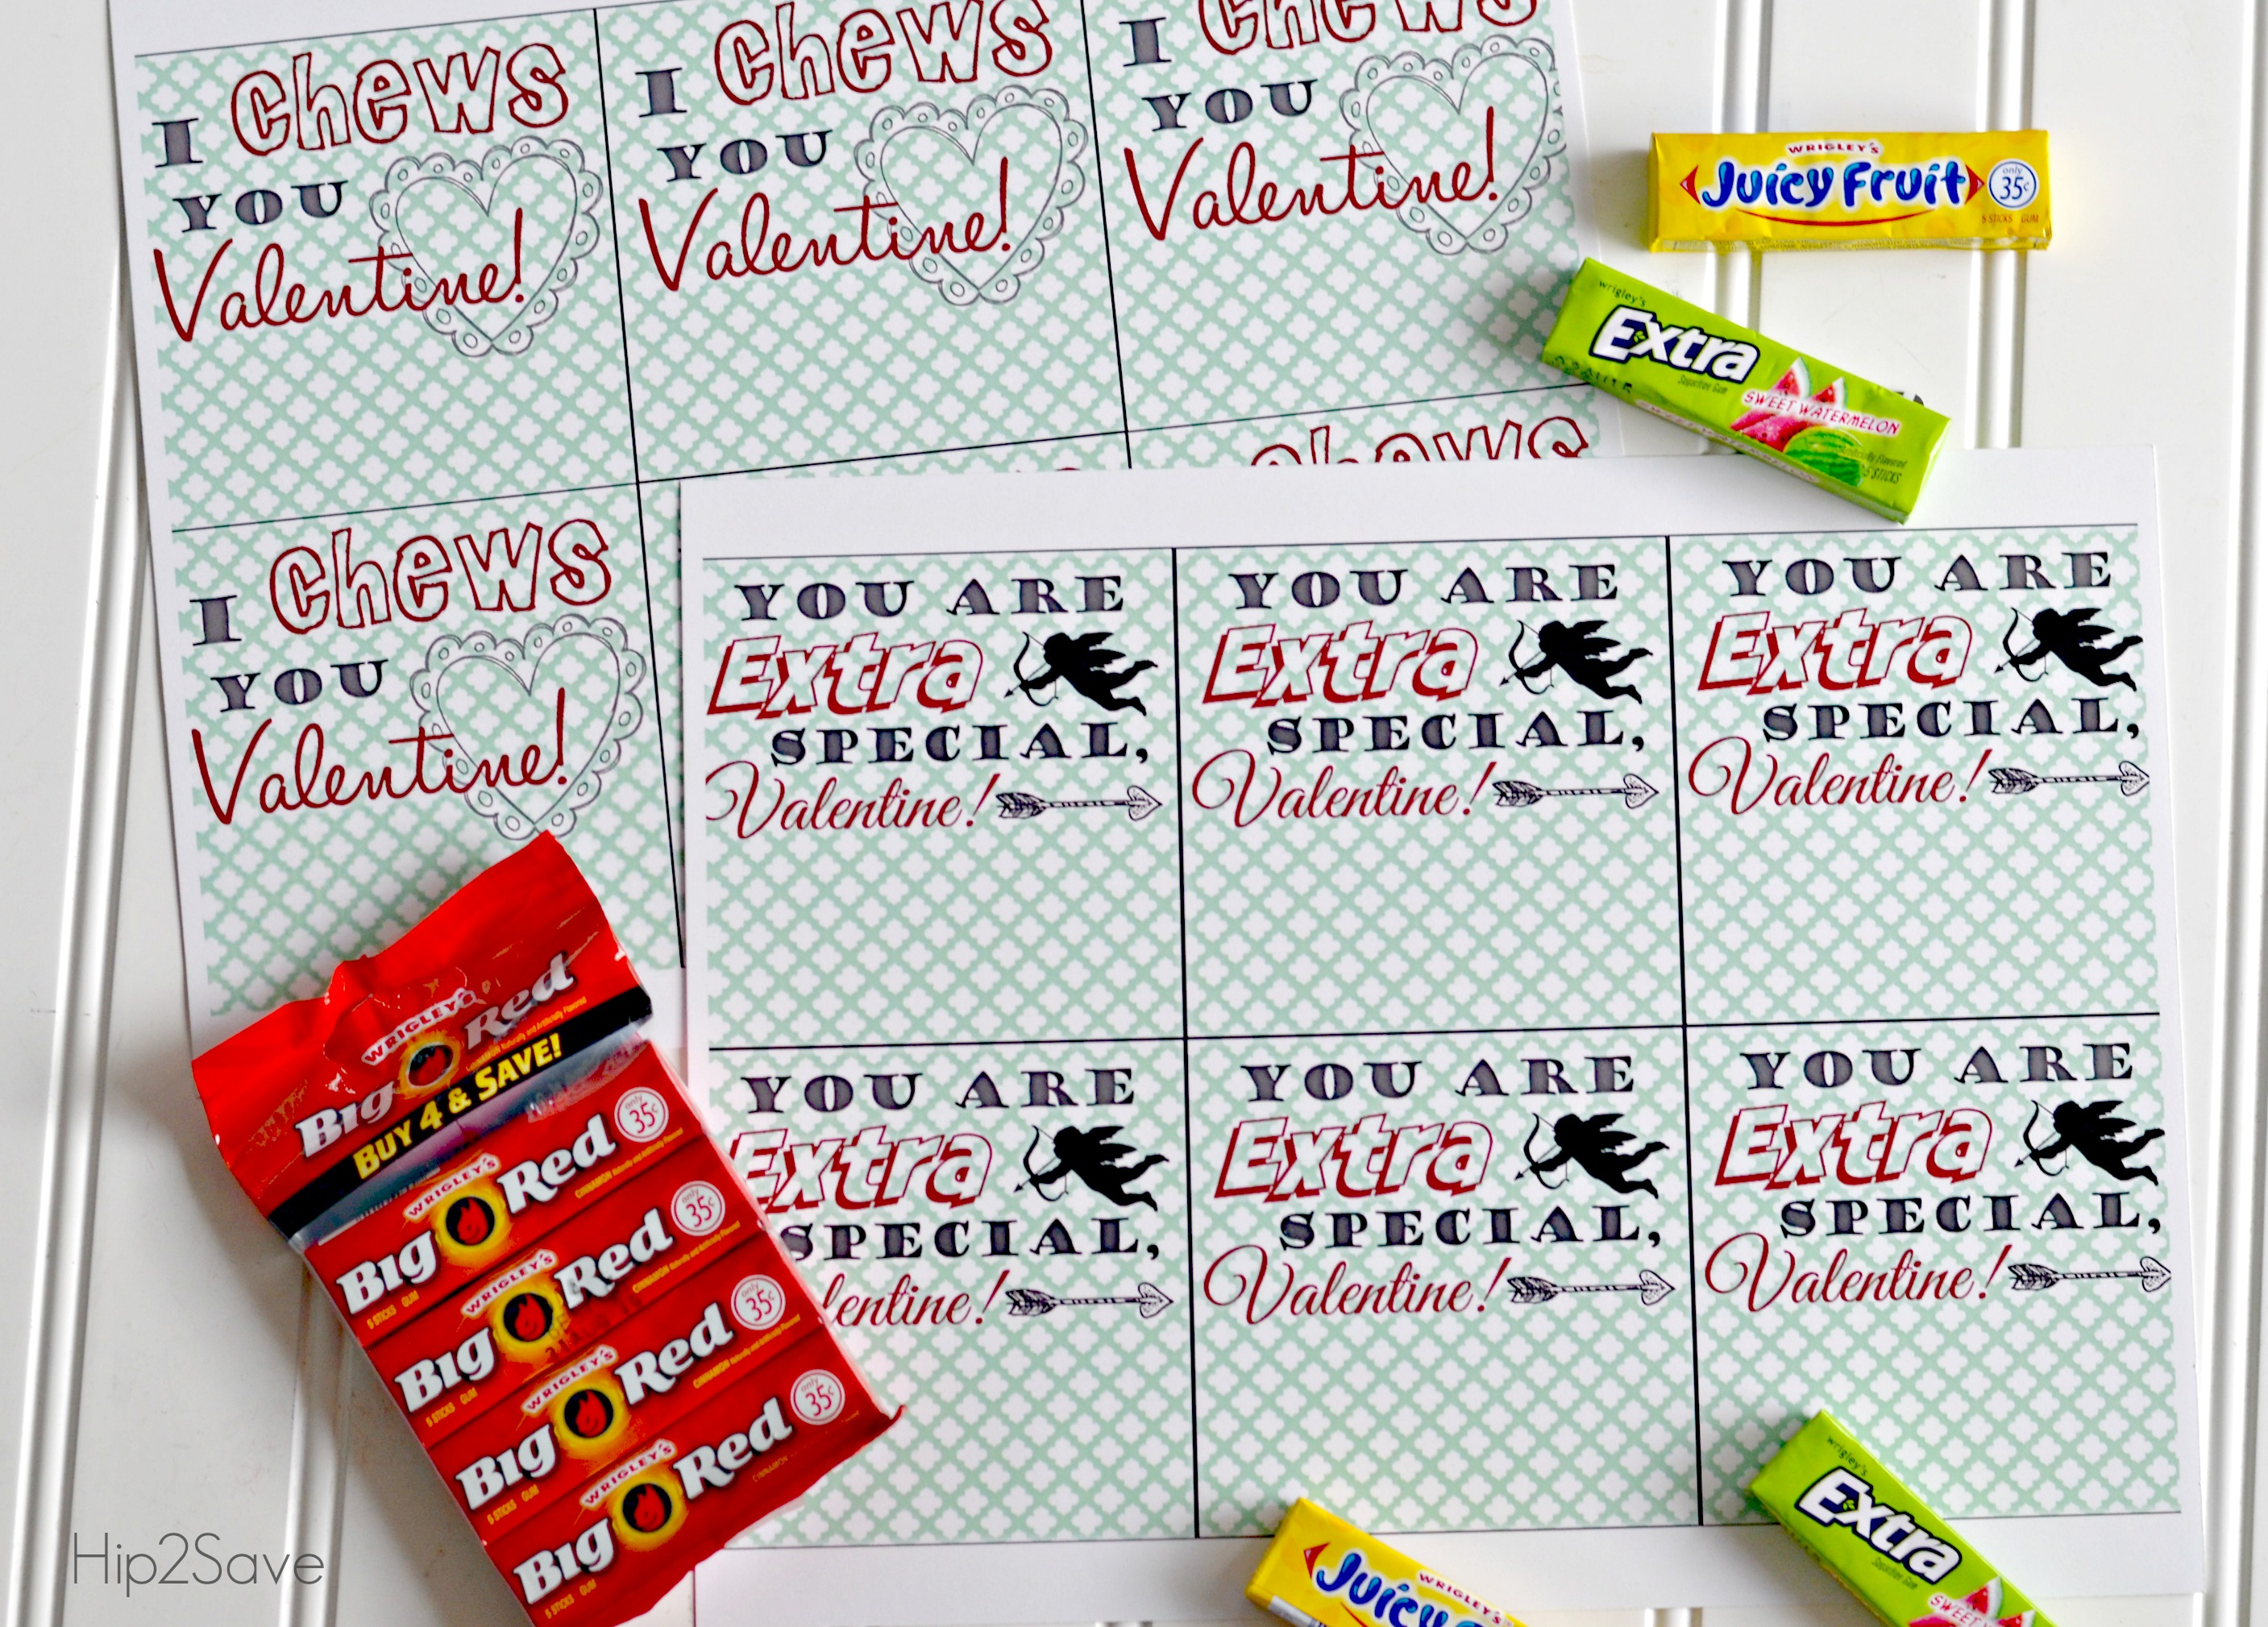 photograph relating to Extra Gum Valentine Printable named Chewing Gum Valentines Working day Playing cards (Free of charge Printables) - Hip2Help you save